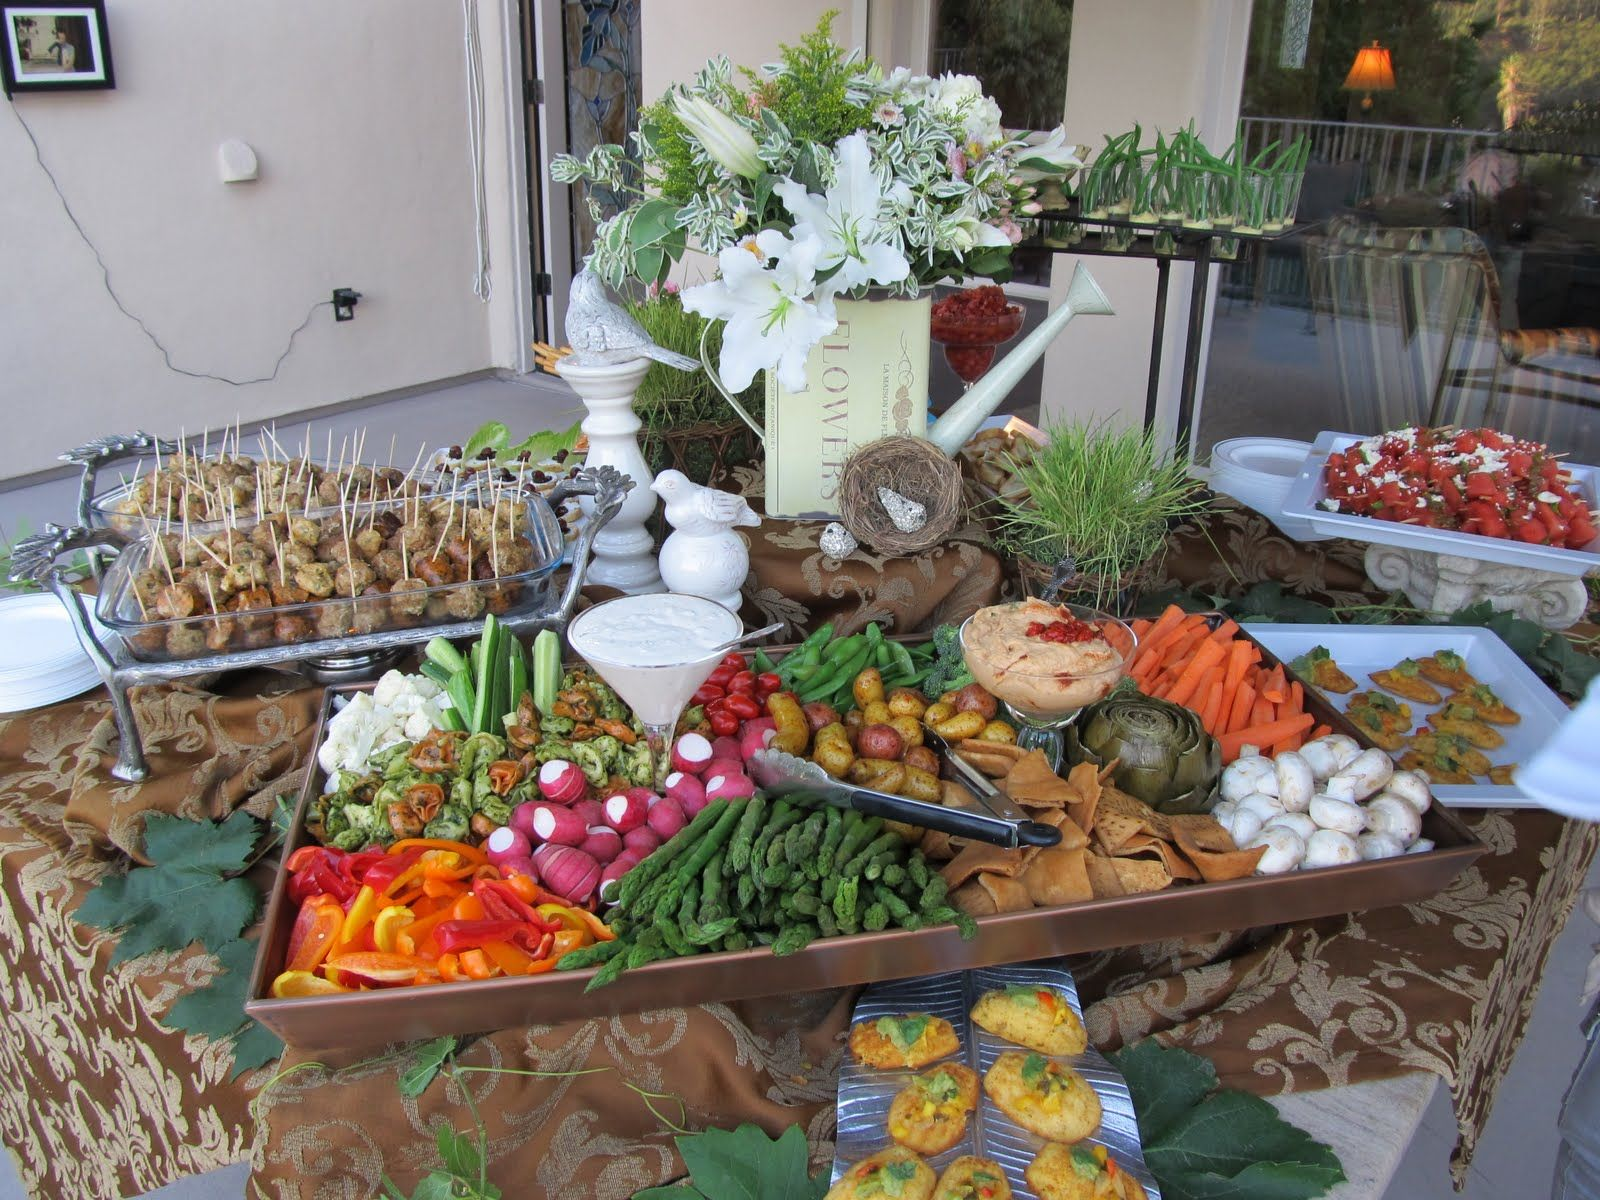 Catering display rustic vegetable tray i like the